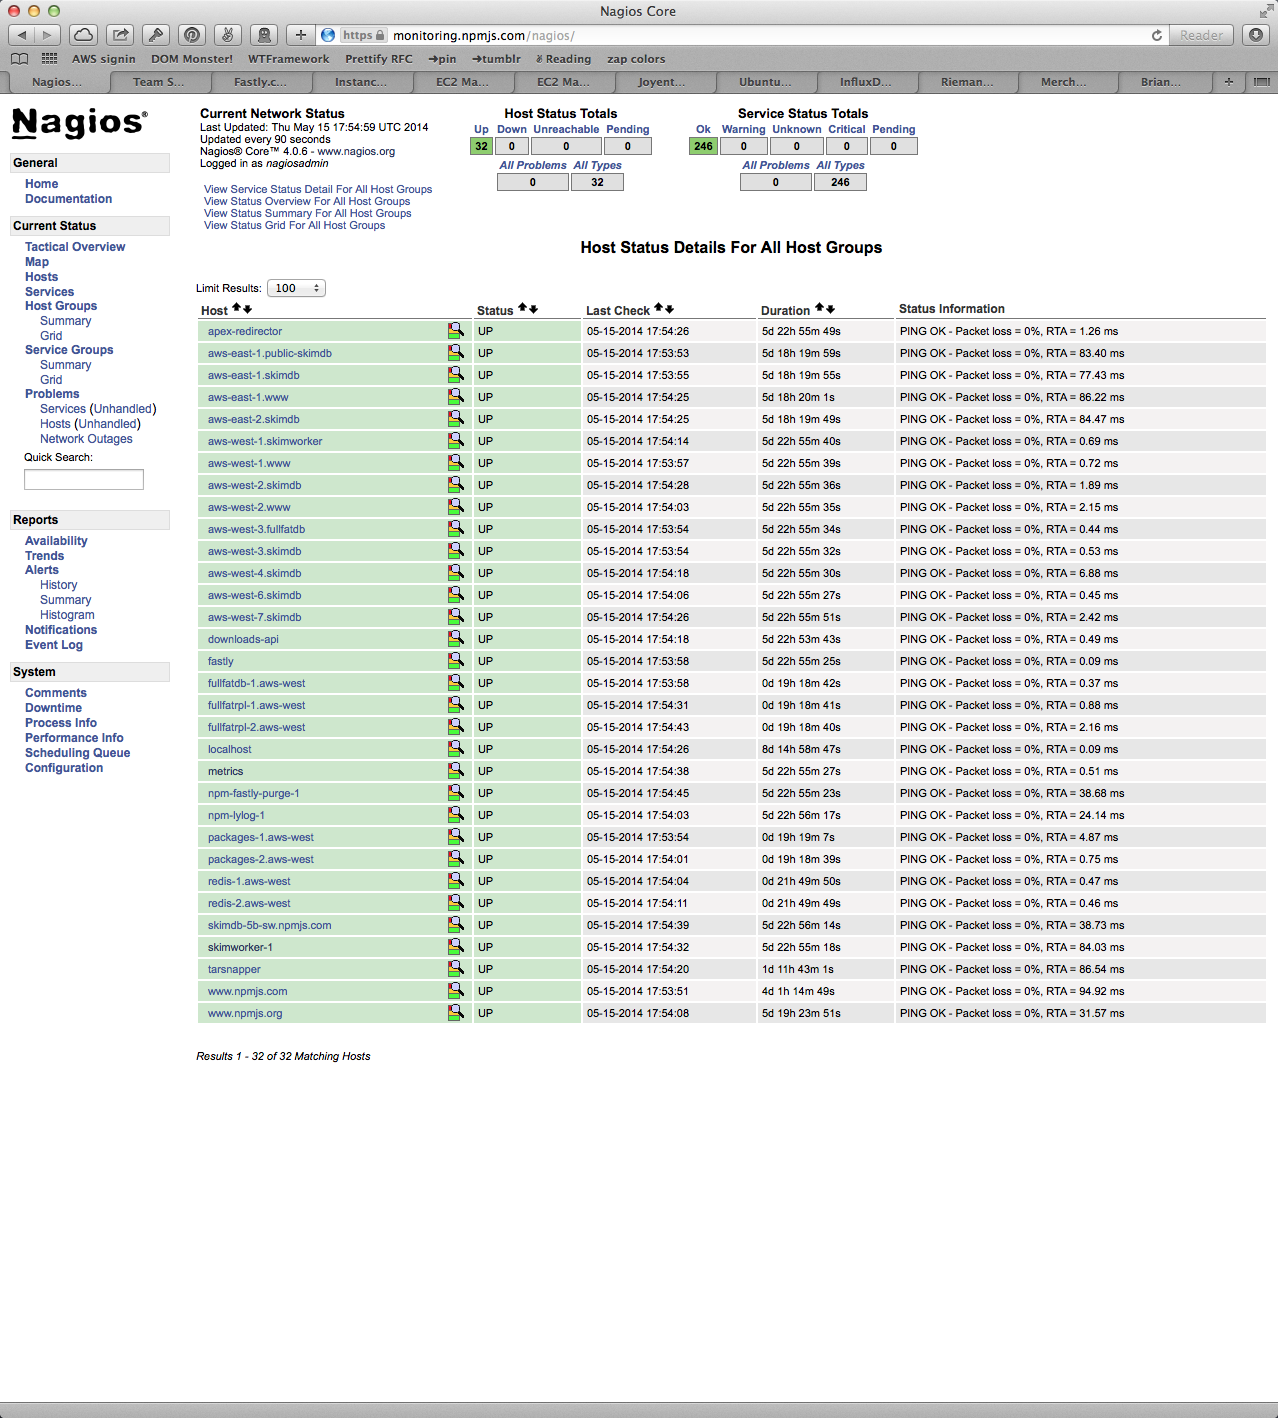 Nagios in action